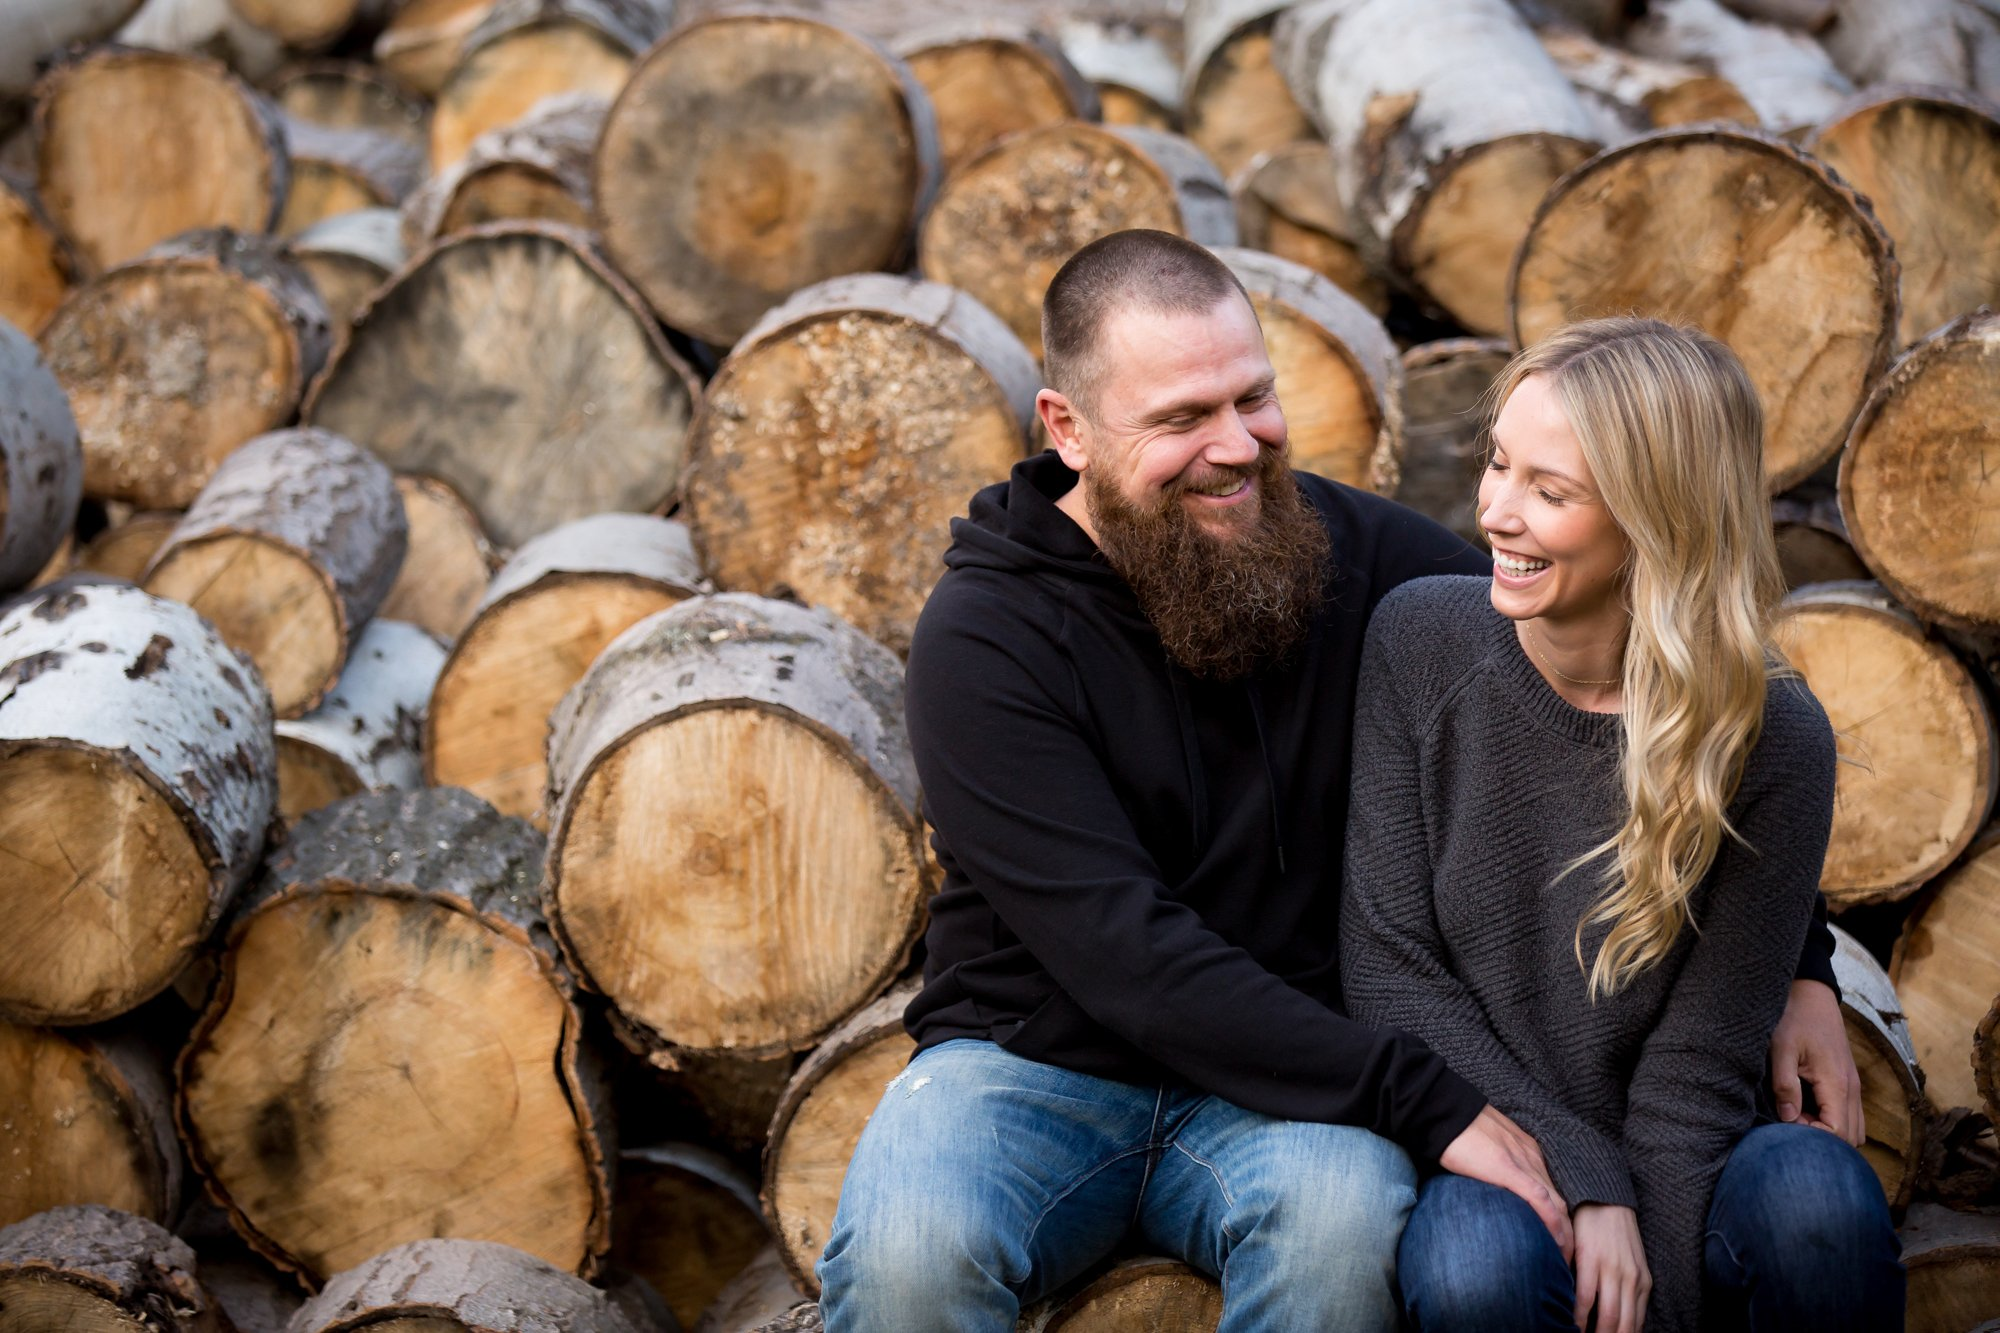 A couple laughing together on a log pile